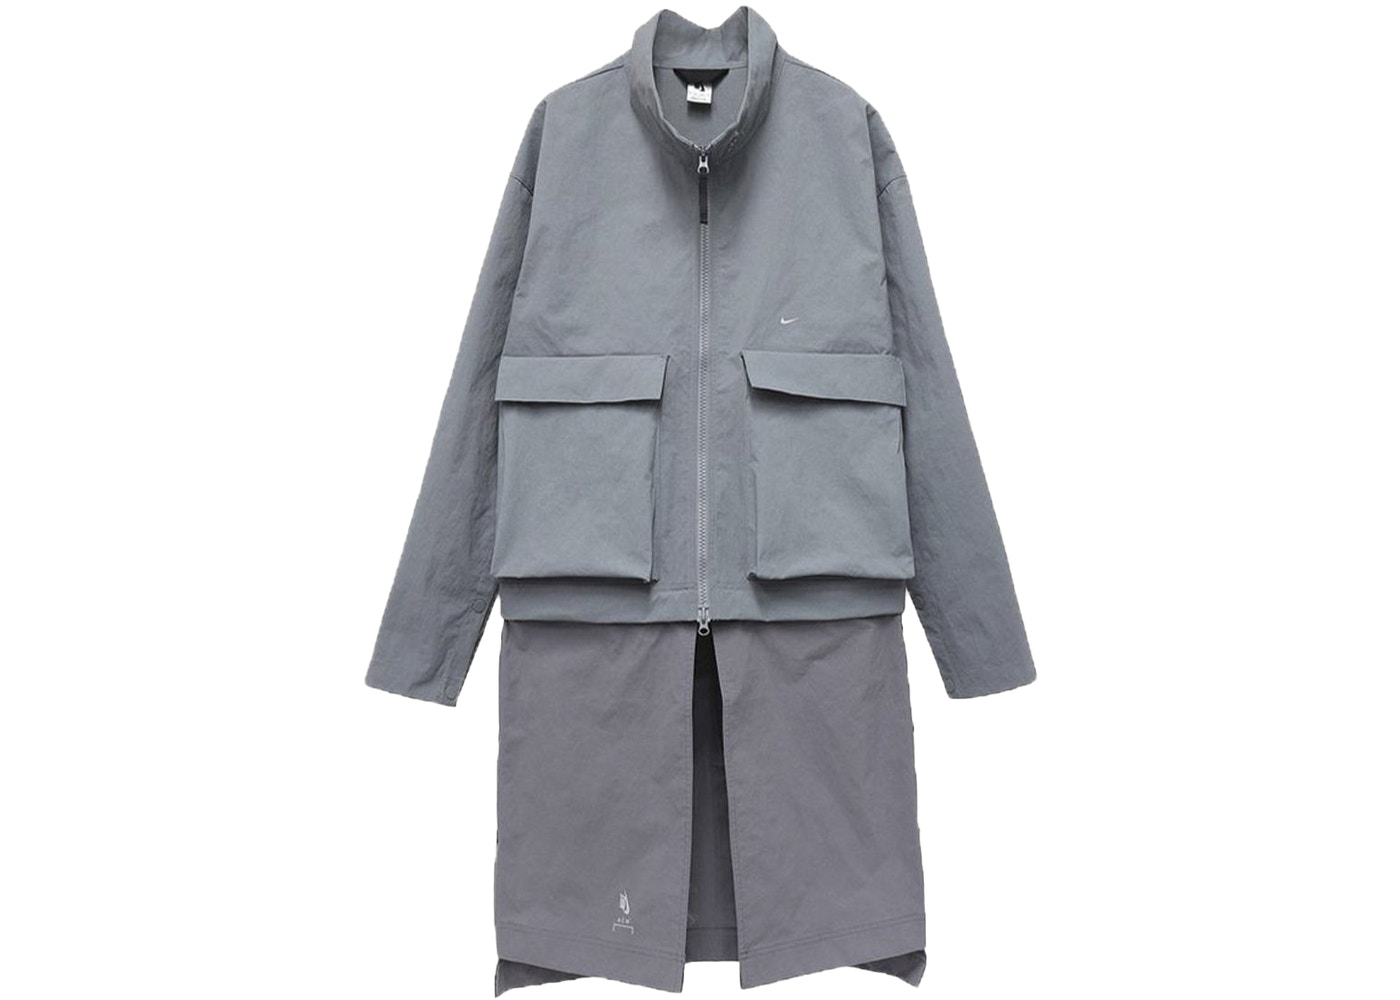 Nike X Acw Dual Component Overcoat Crushed Granite by Stock X